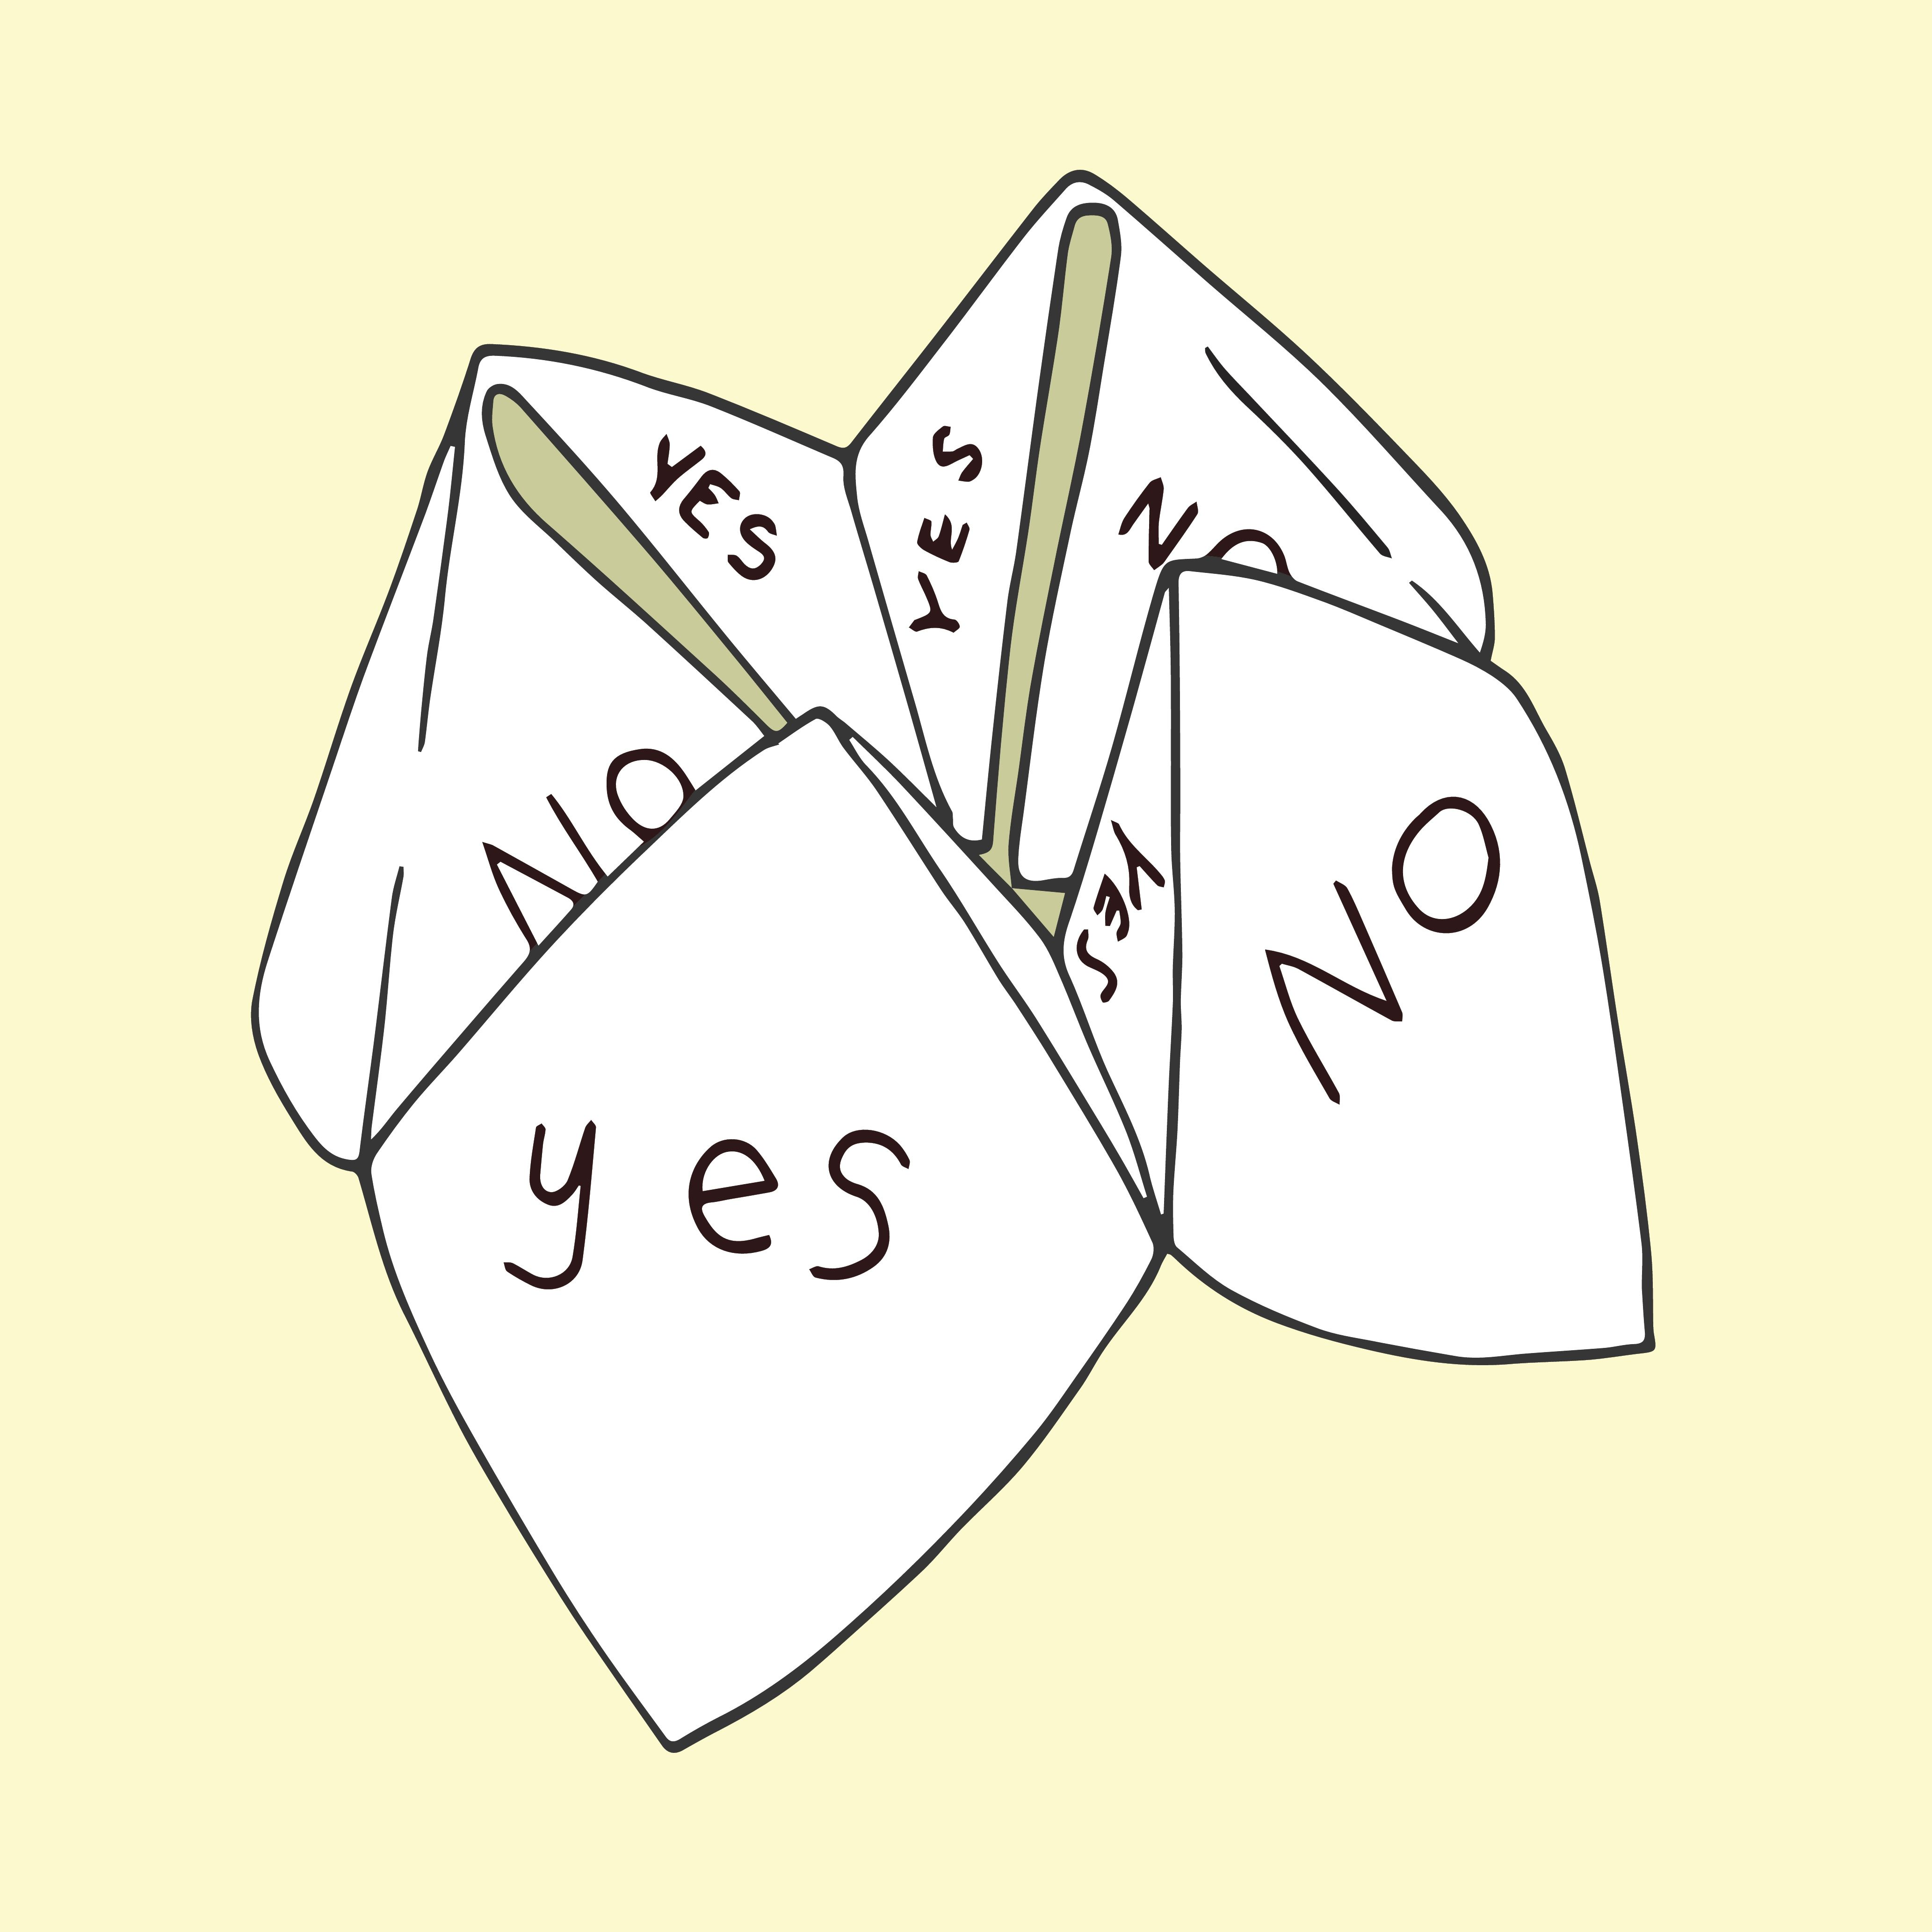 Boyfriend questions to your yes or no ask Top 40